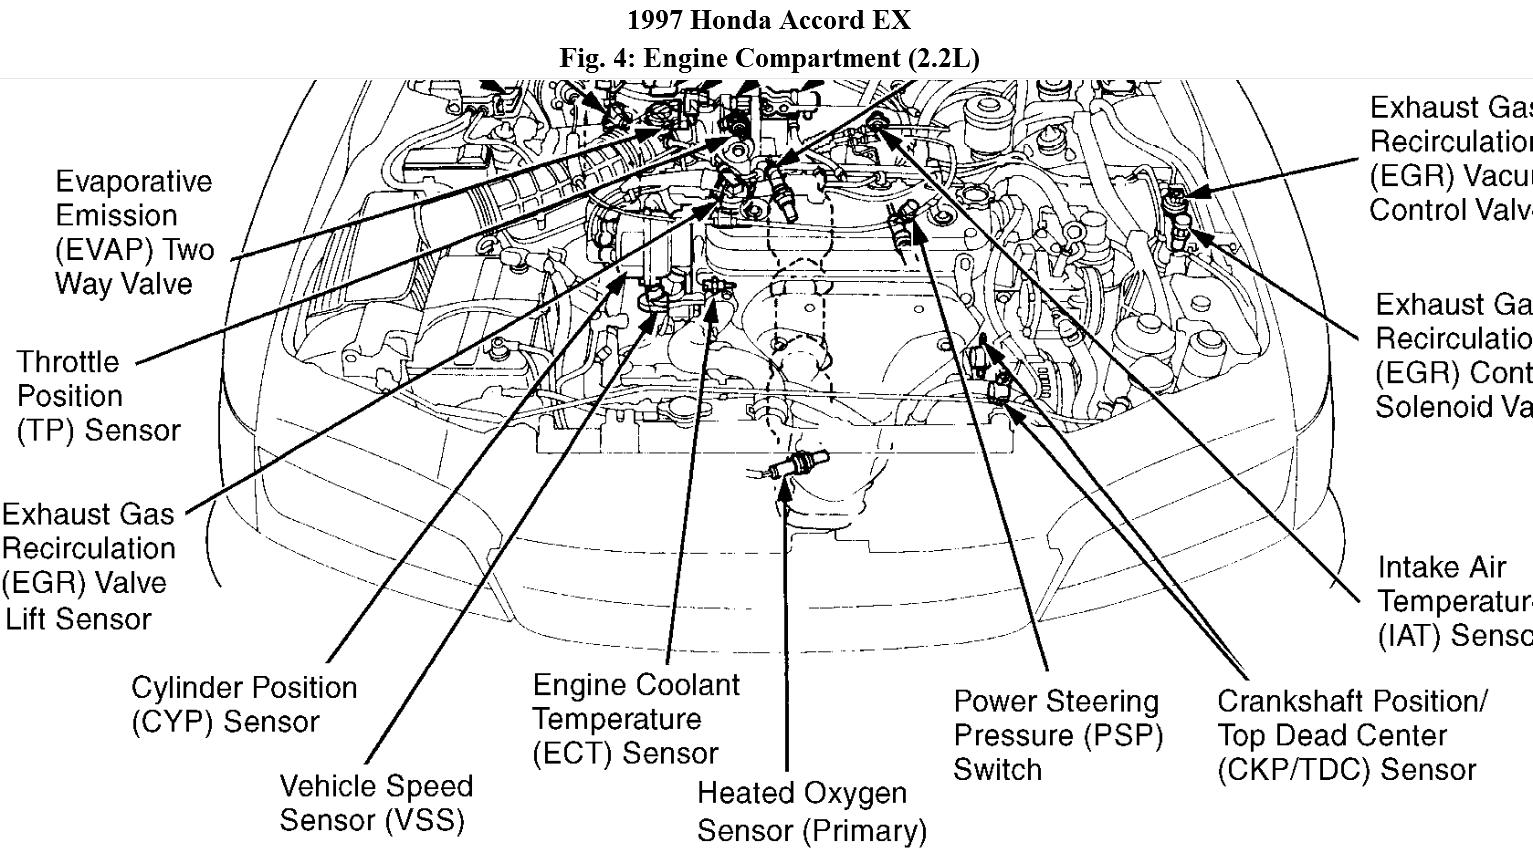 1995 Honda Civic Dx Engine Diagram